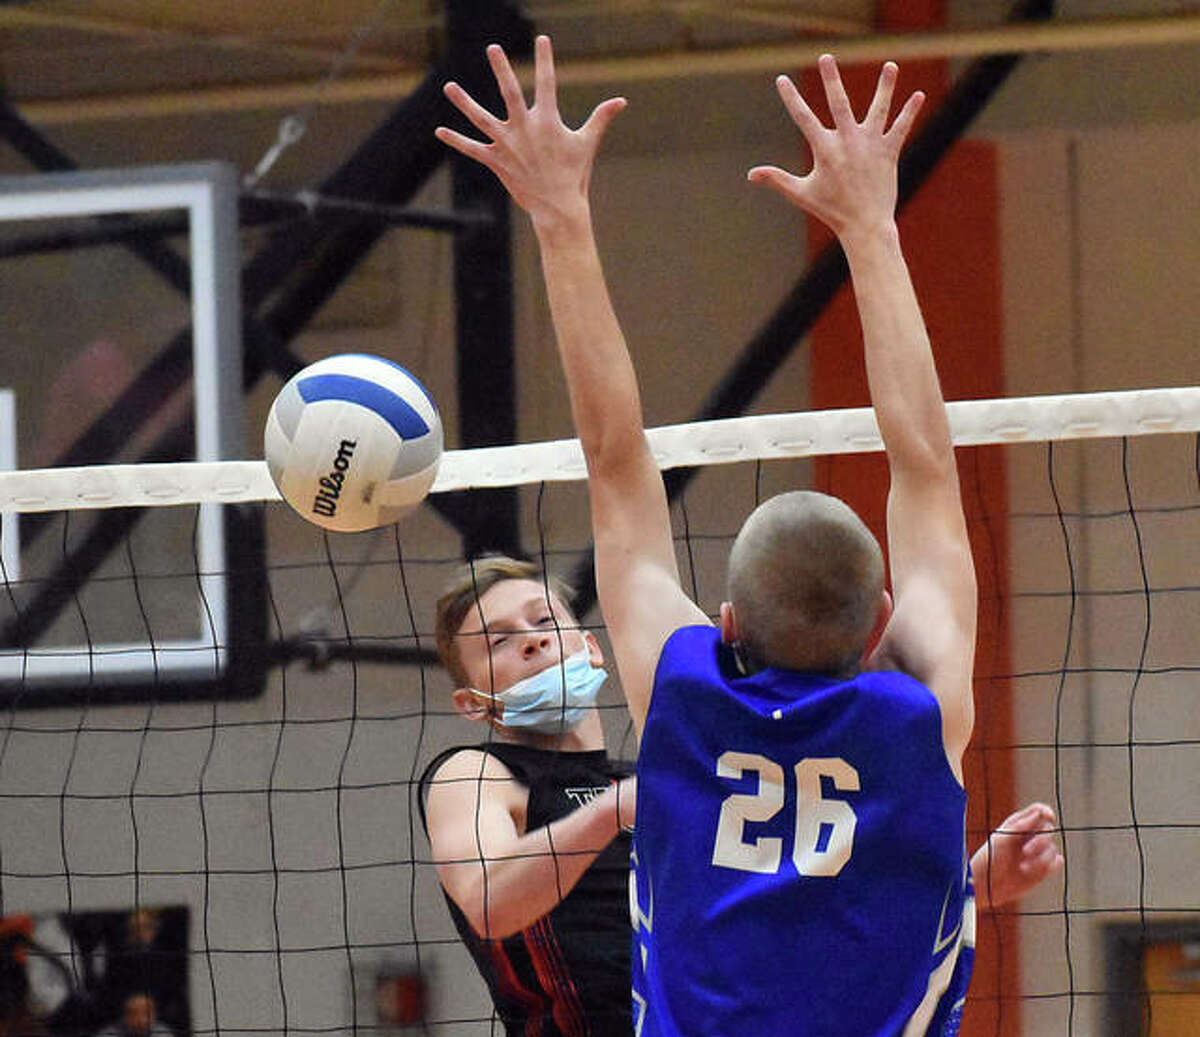 Edwardsville's Preston Weaver tips an attack over the net for a point in the first game against Marquette Catholic on Wednesday inside Lucco-Jackson Gymnasium in Edwardsville.